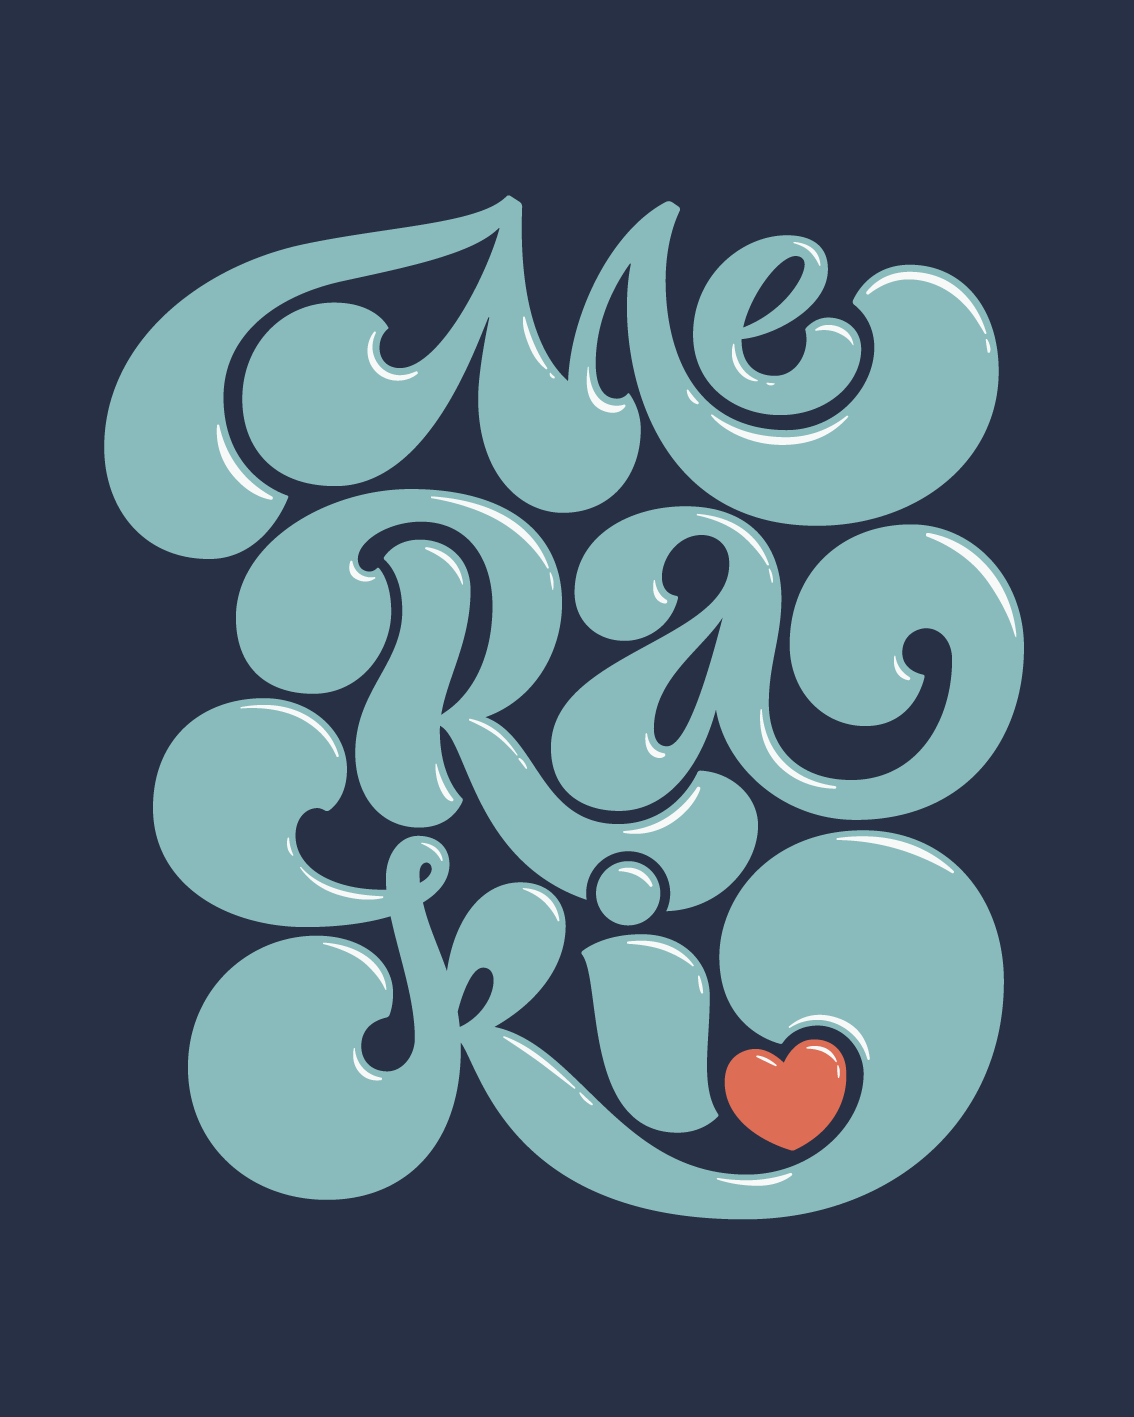 Mel cerri lettering artist amazing words meraki is a greek word that means to do something with passion with absolute devotion with undivided attention biocorpaavc Image collections